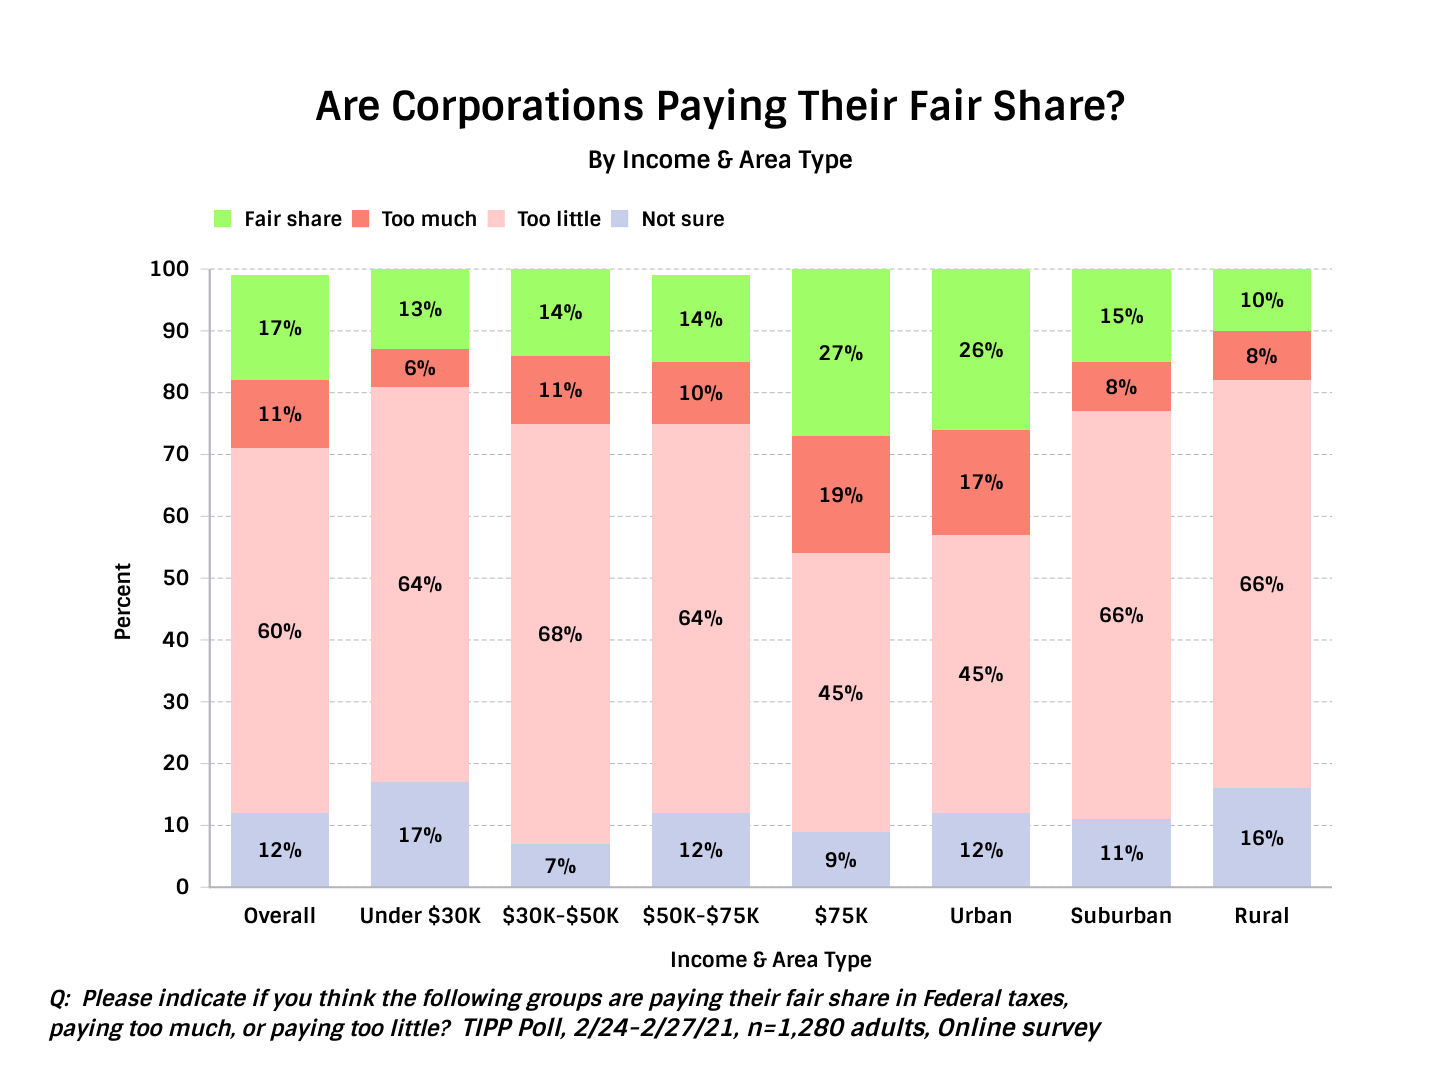 Are Corporations Paying Their Fair Share - Chart